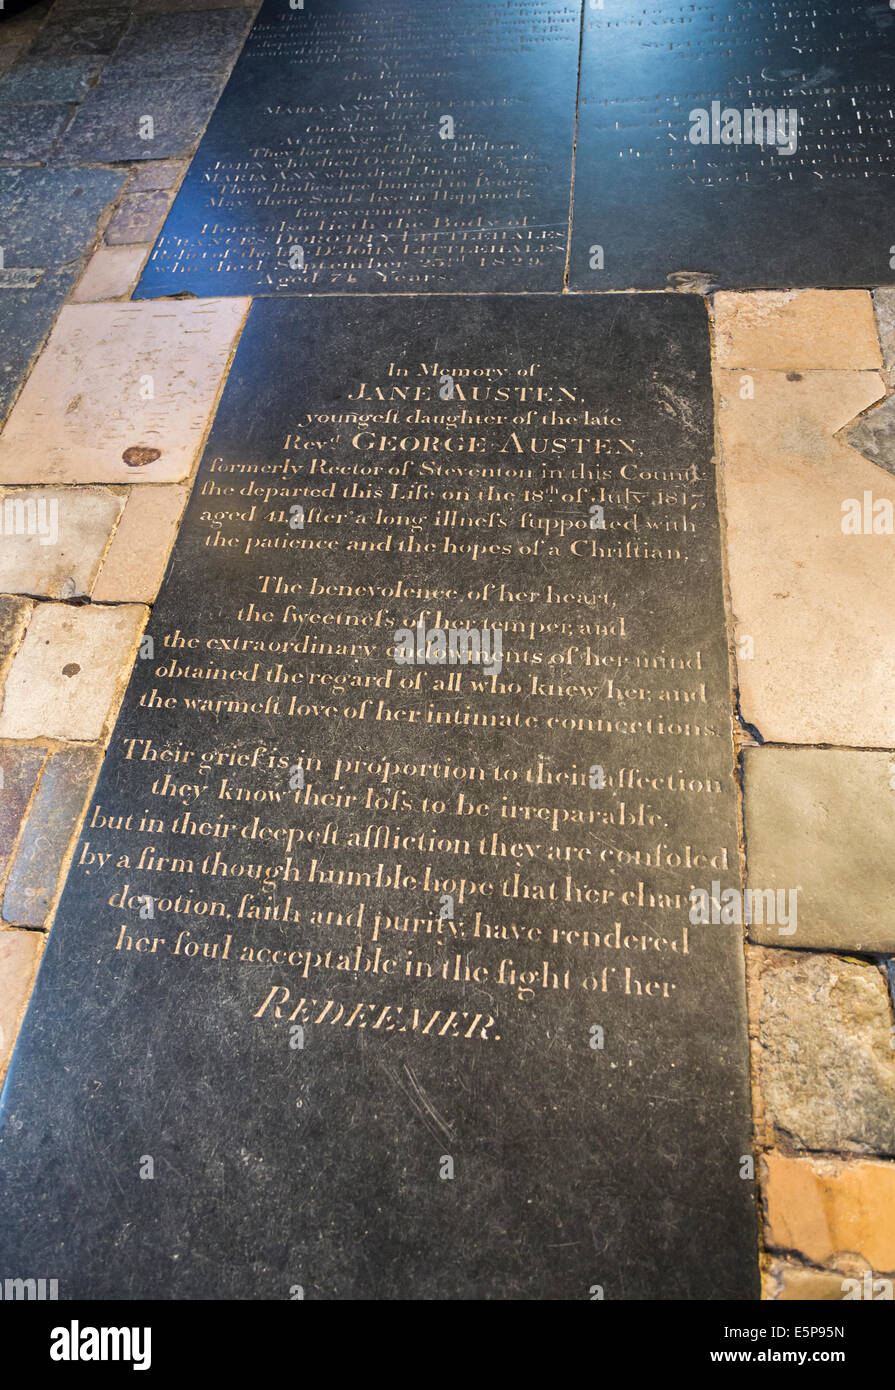 Tombstone of Jane Austen, famous 19th century writer, author of 'Pride and Prejudice', in Winchester Cathedral - Stock Image